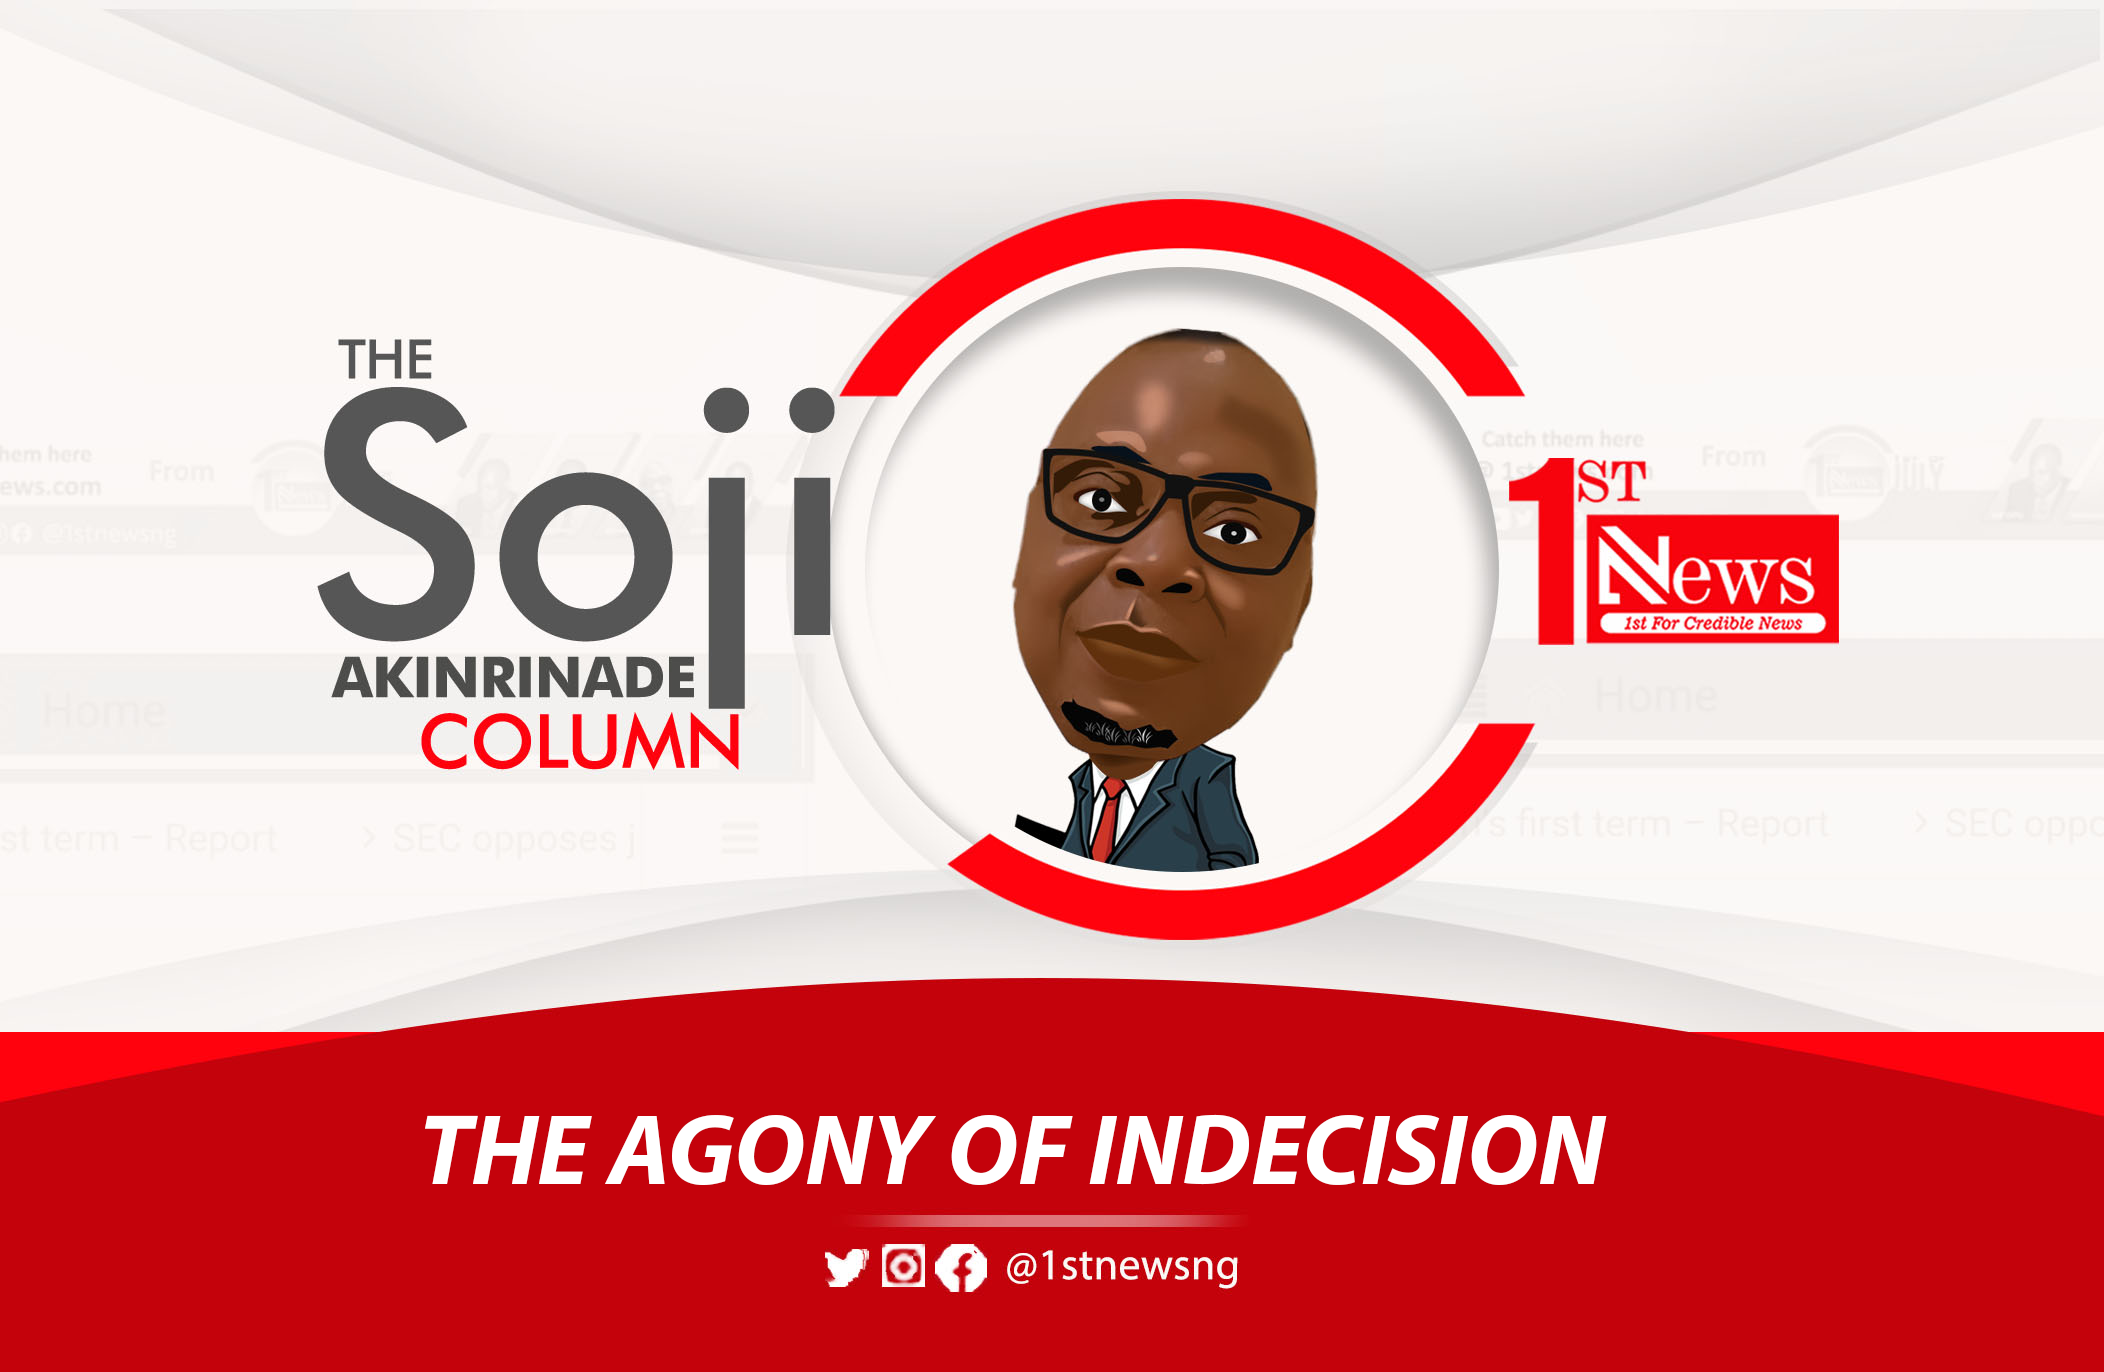 Buhari: The agony of indecision - Soji Akinrinade